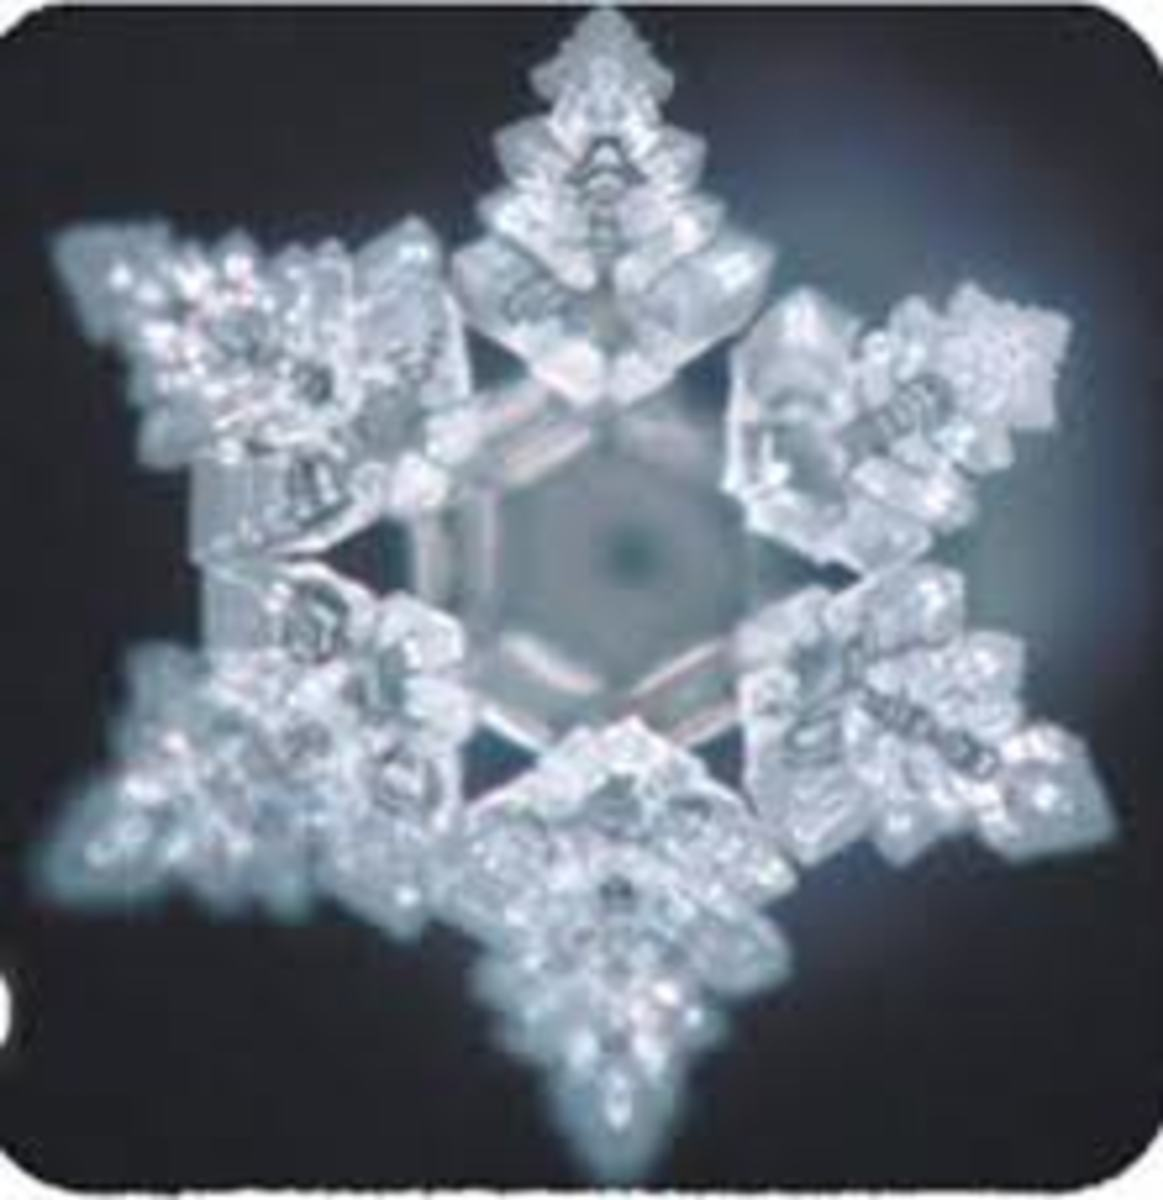 Mind Over Matter - Ice Crystals and Doctor Masuro Emoto